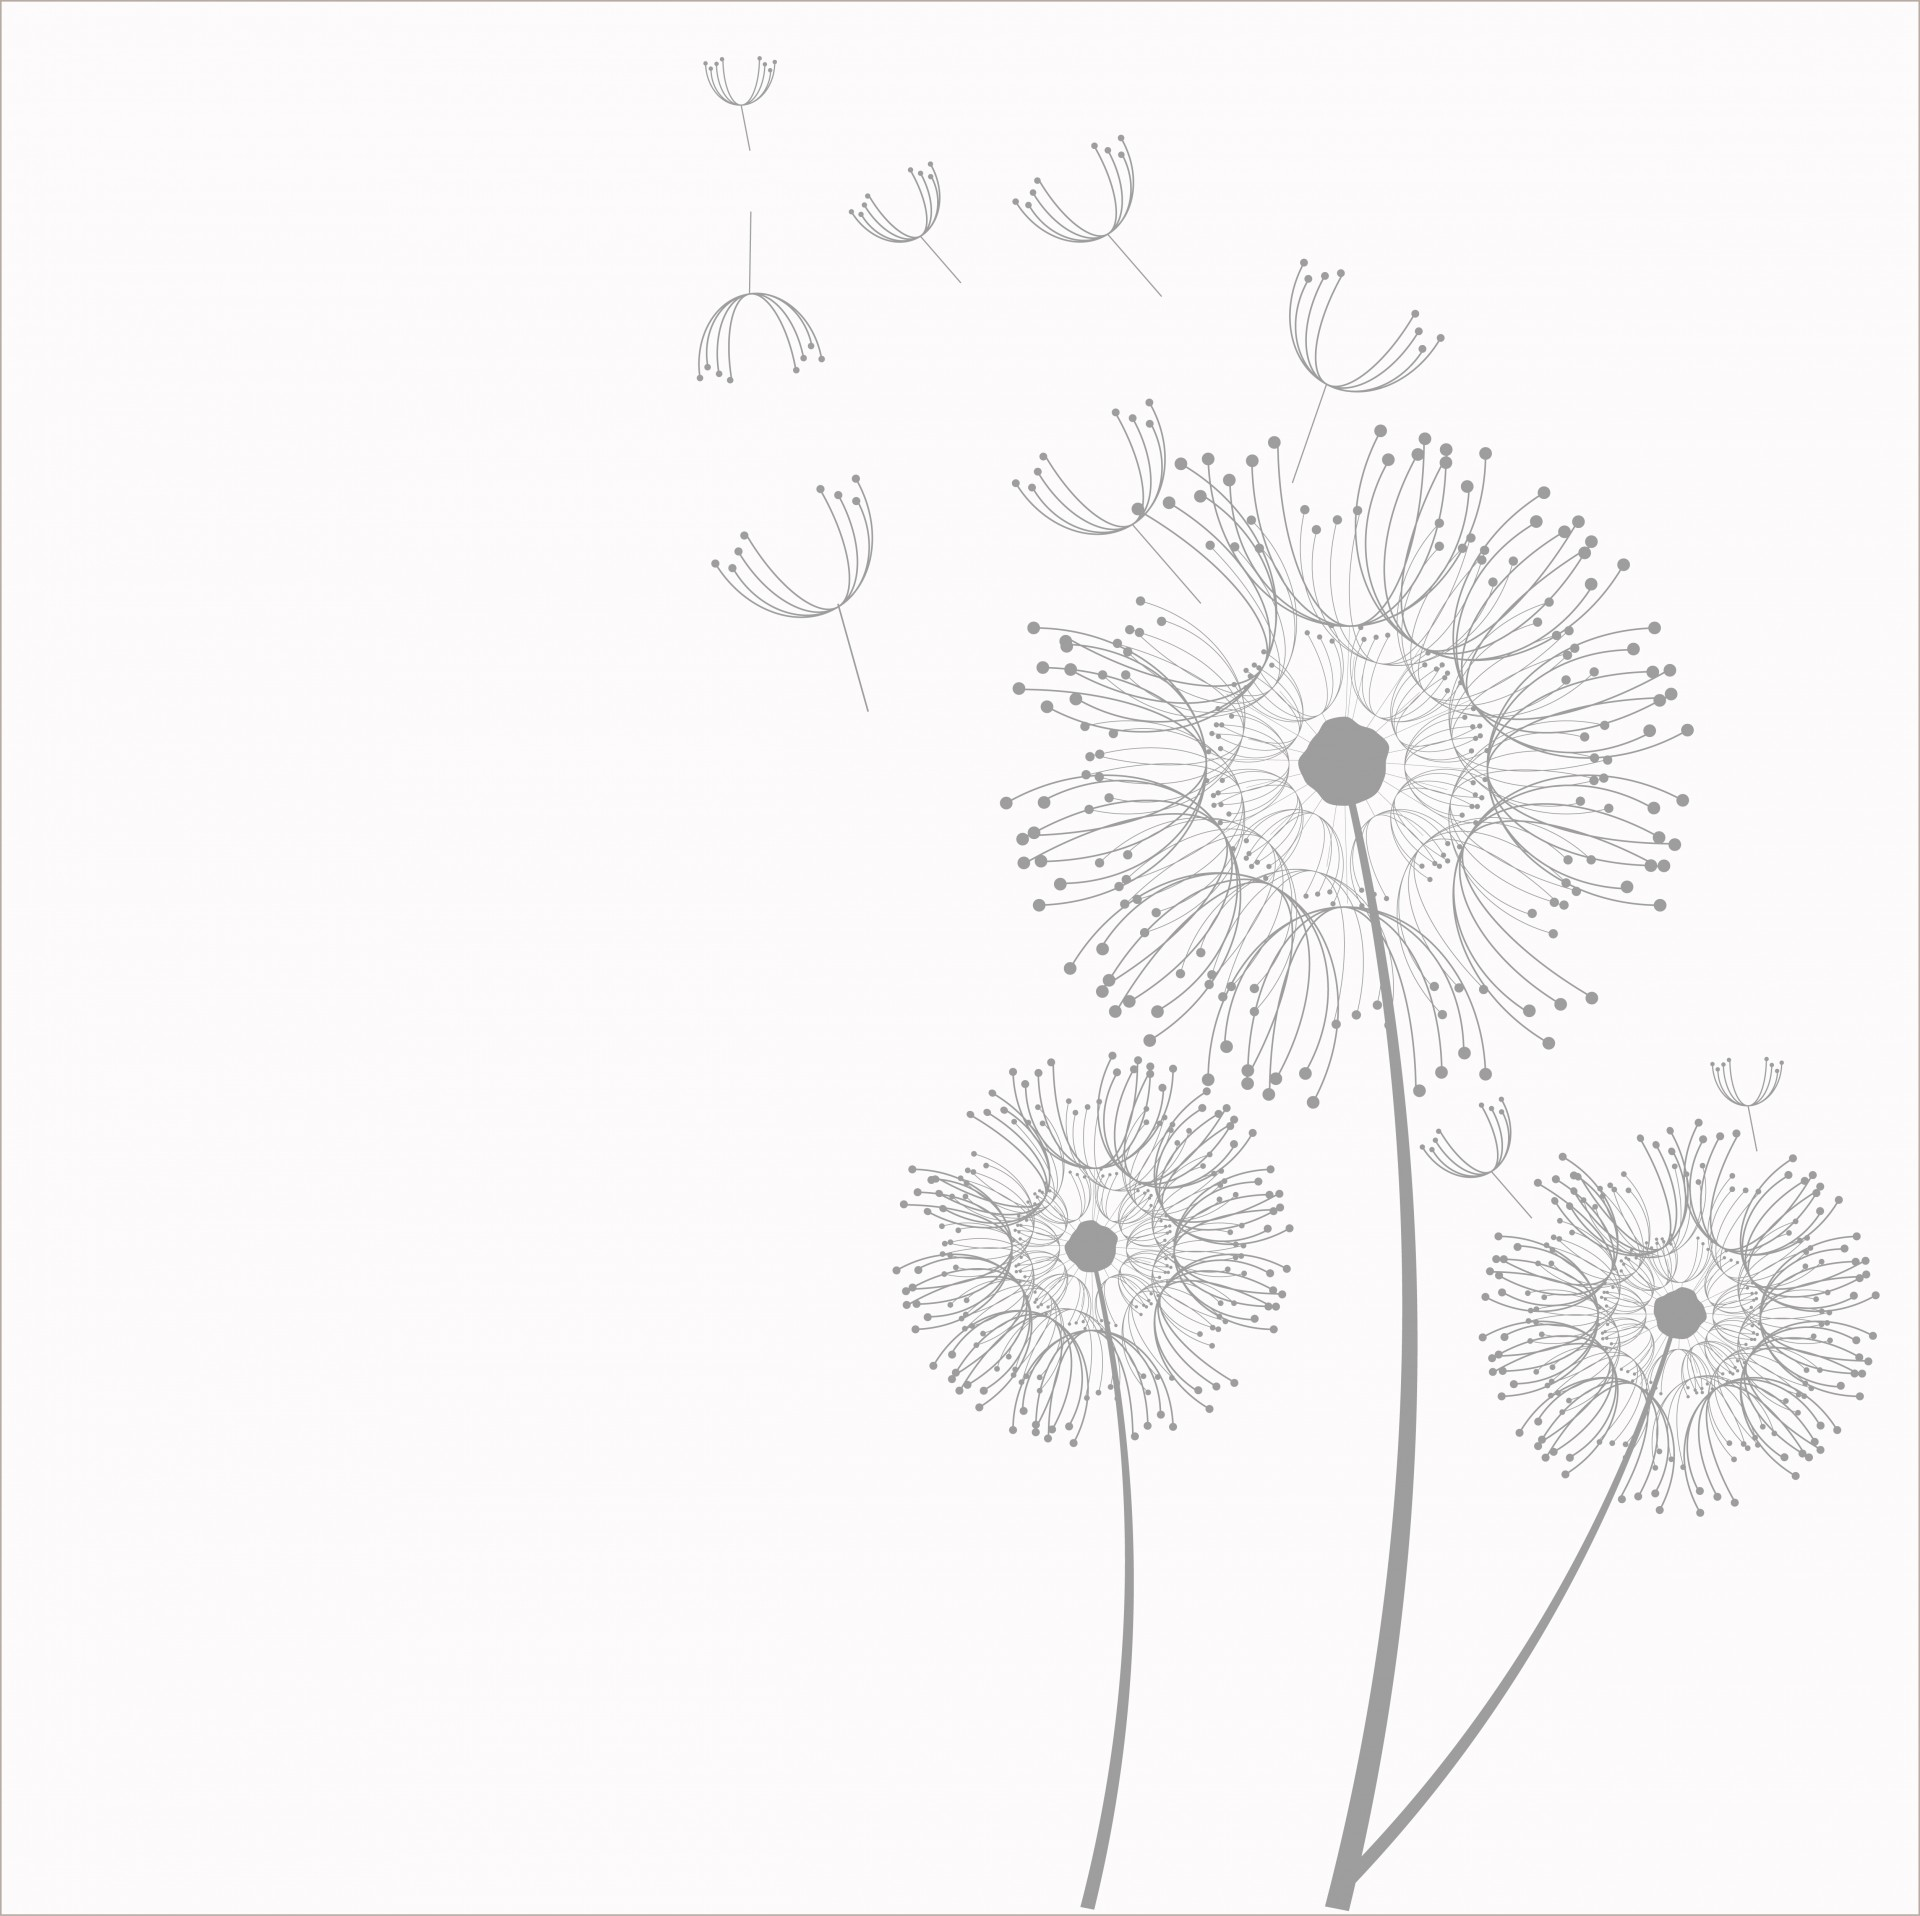 Flowers free stock photo. Dandelion clipart jpg library library